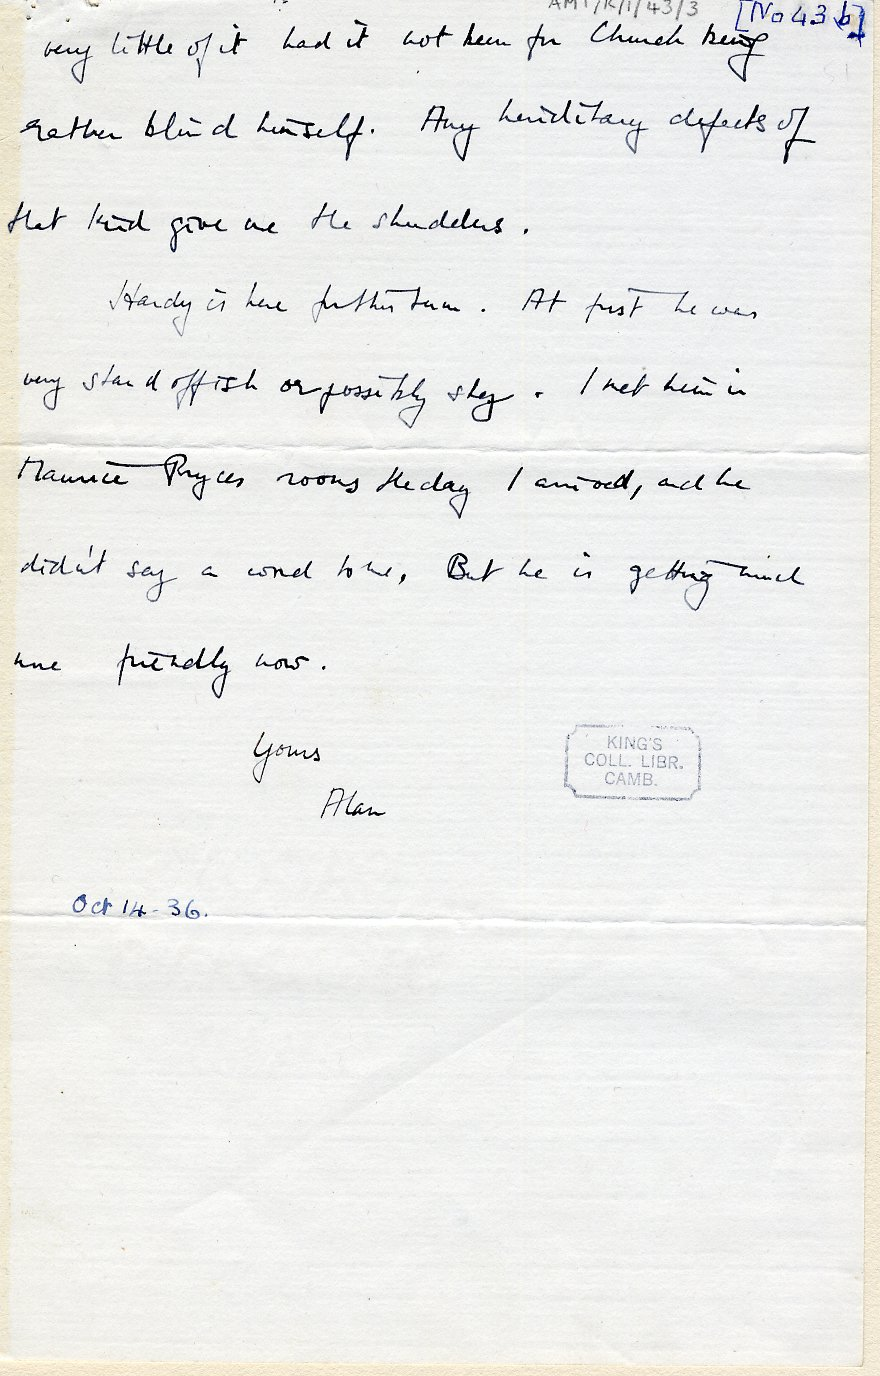 Third page of a letter to his mother dated 14 October 1936. [AMT K/1/43]